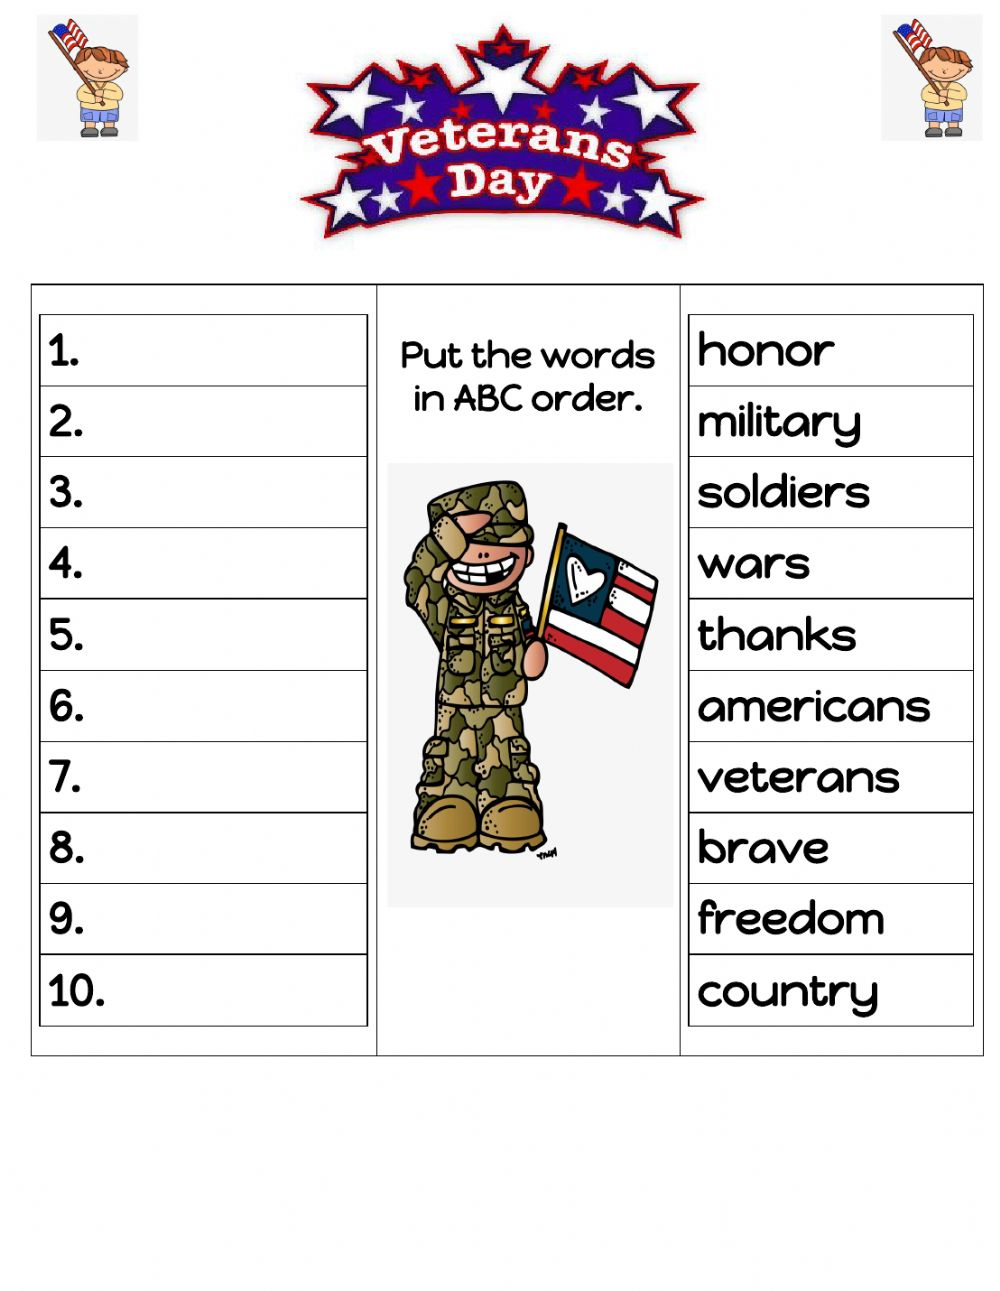 medium resolution of Veterans Day ABC order worksheet